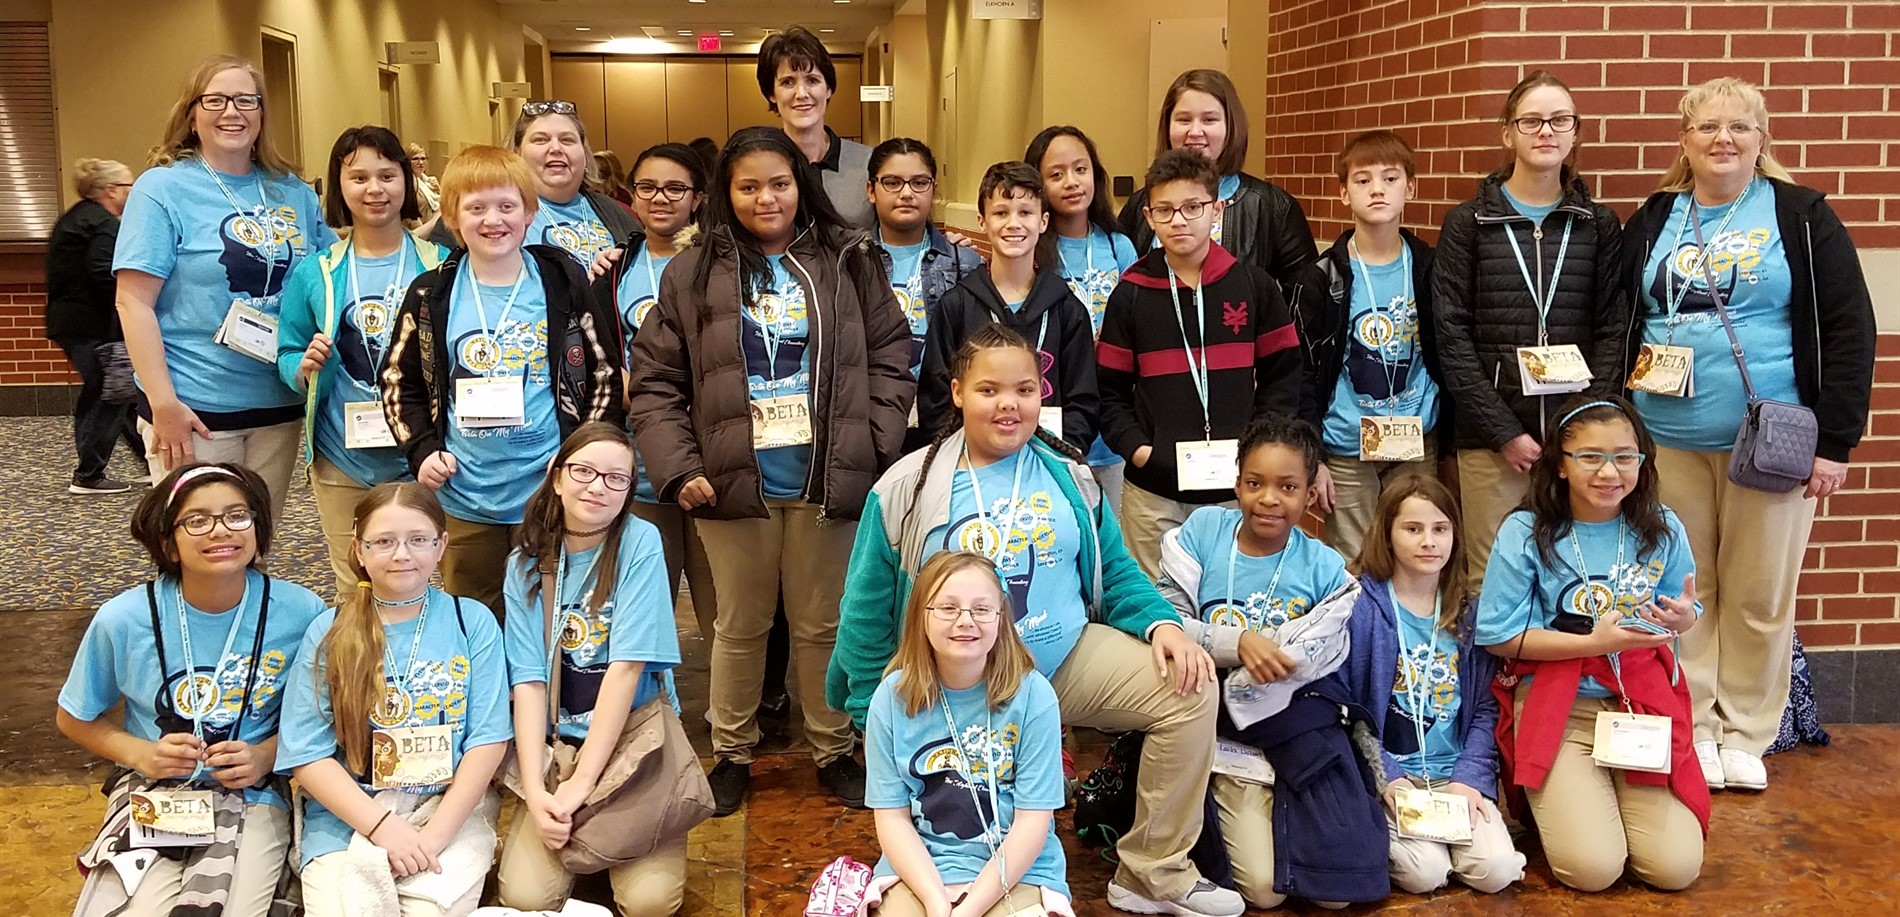 The New Highland Elementary School BETA Club was prepared for state competition.